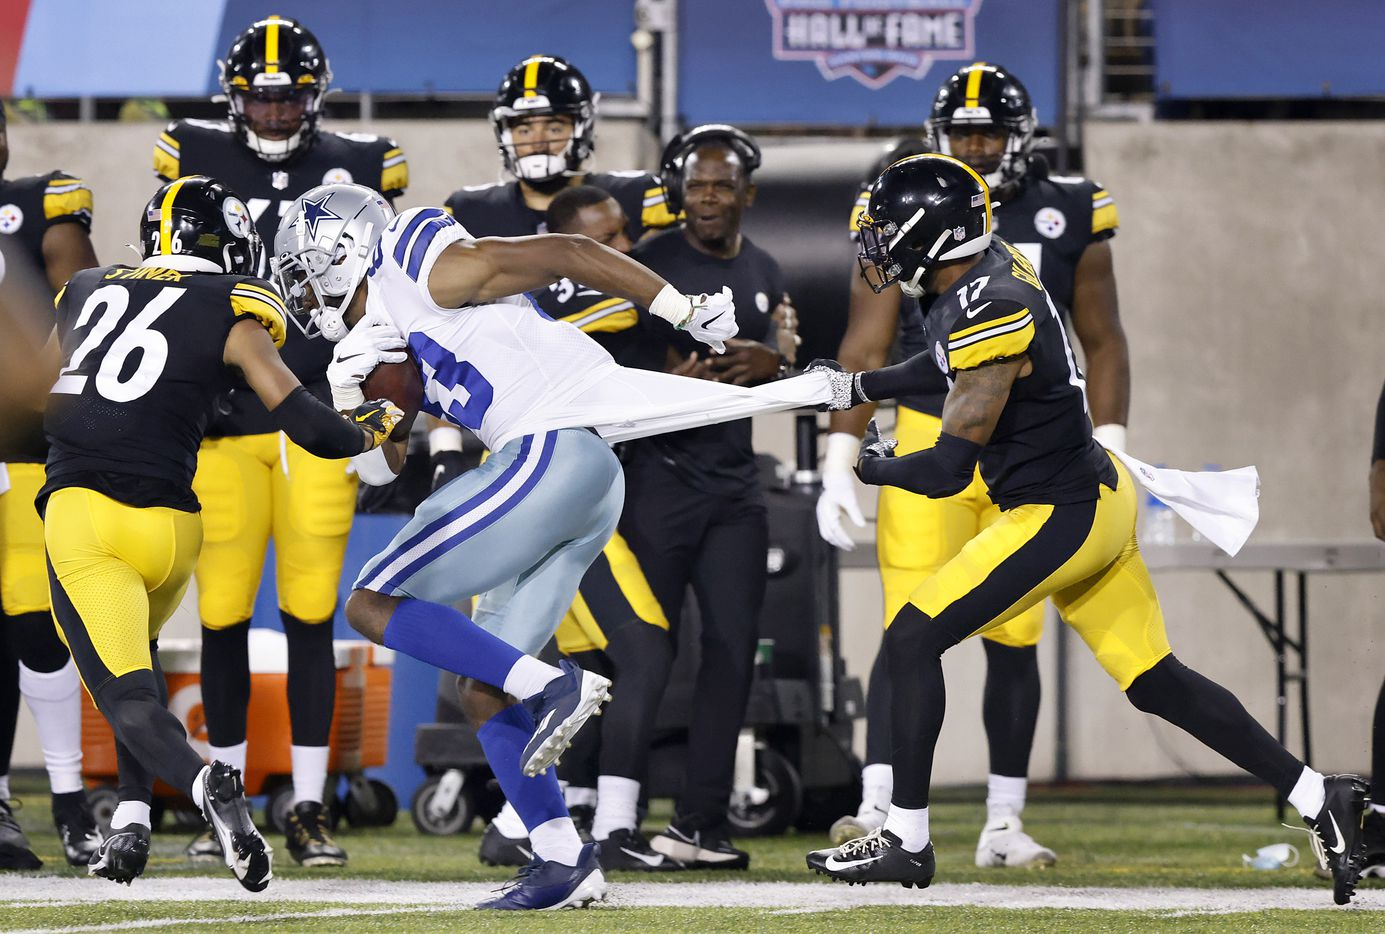 Dallas Cowboys wide receiver Brennan Eagles (83) is slowed by Pittsburgh Steelers cornerback Mark Gilbert (17) following a fourth quarter pass completion during their preseason game at Tom Benson Hall of Fame Stadium in Canton, Ohio, Thursday, August 5, 2021. (Tom Fox/The Dallas Morning News)